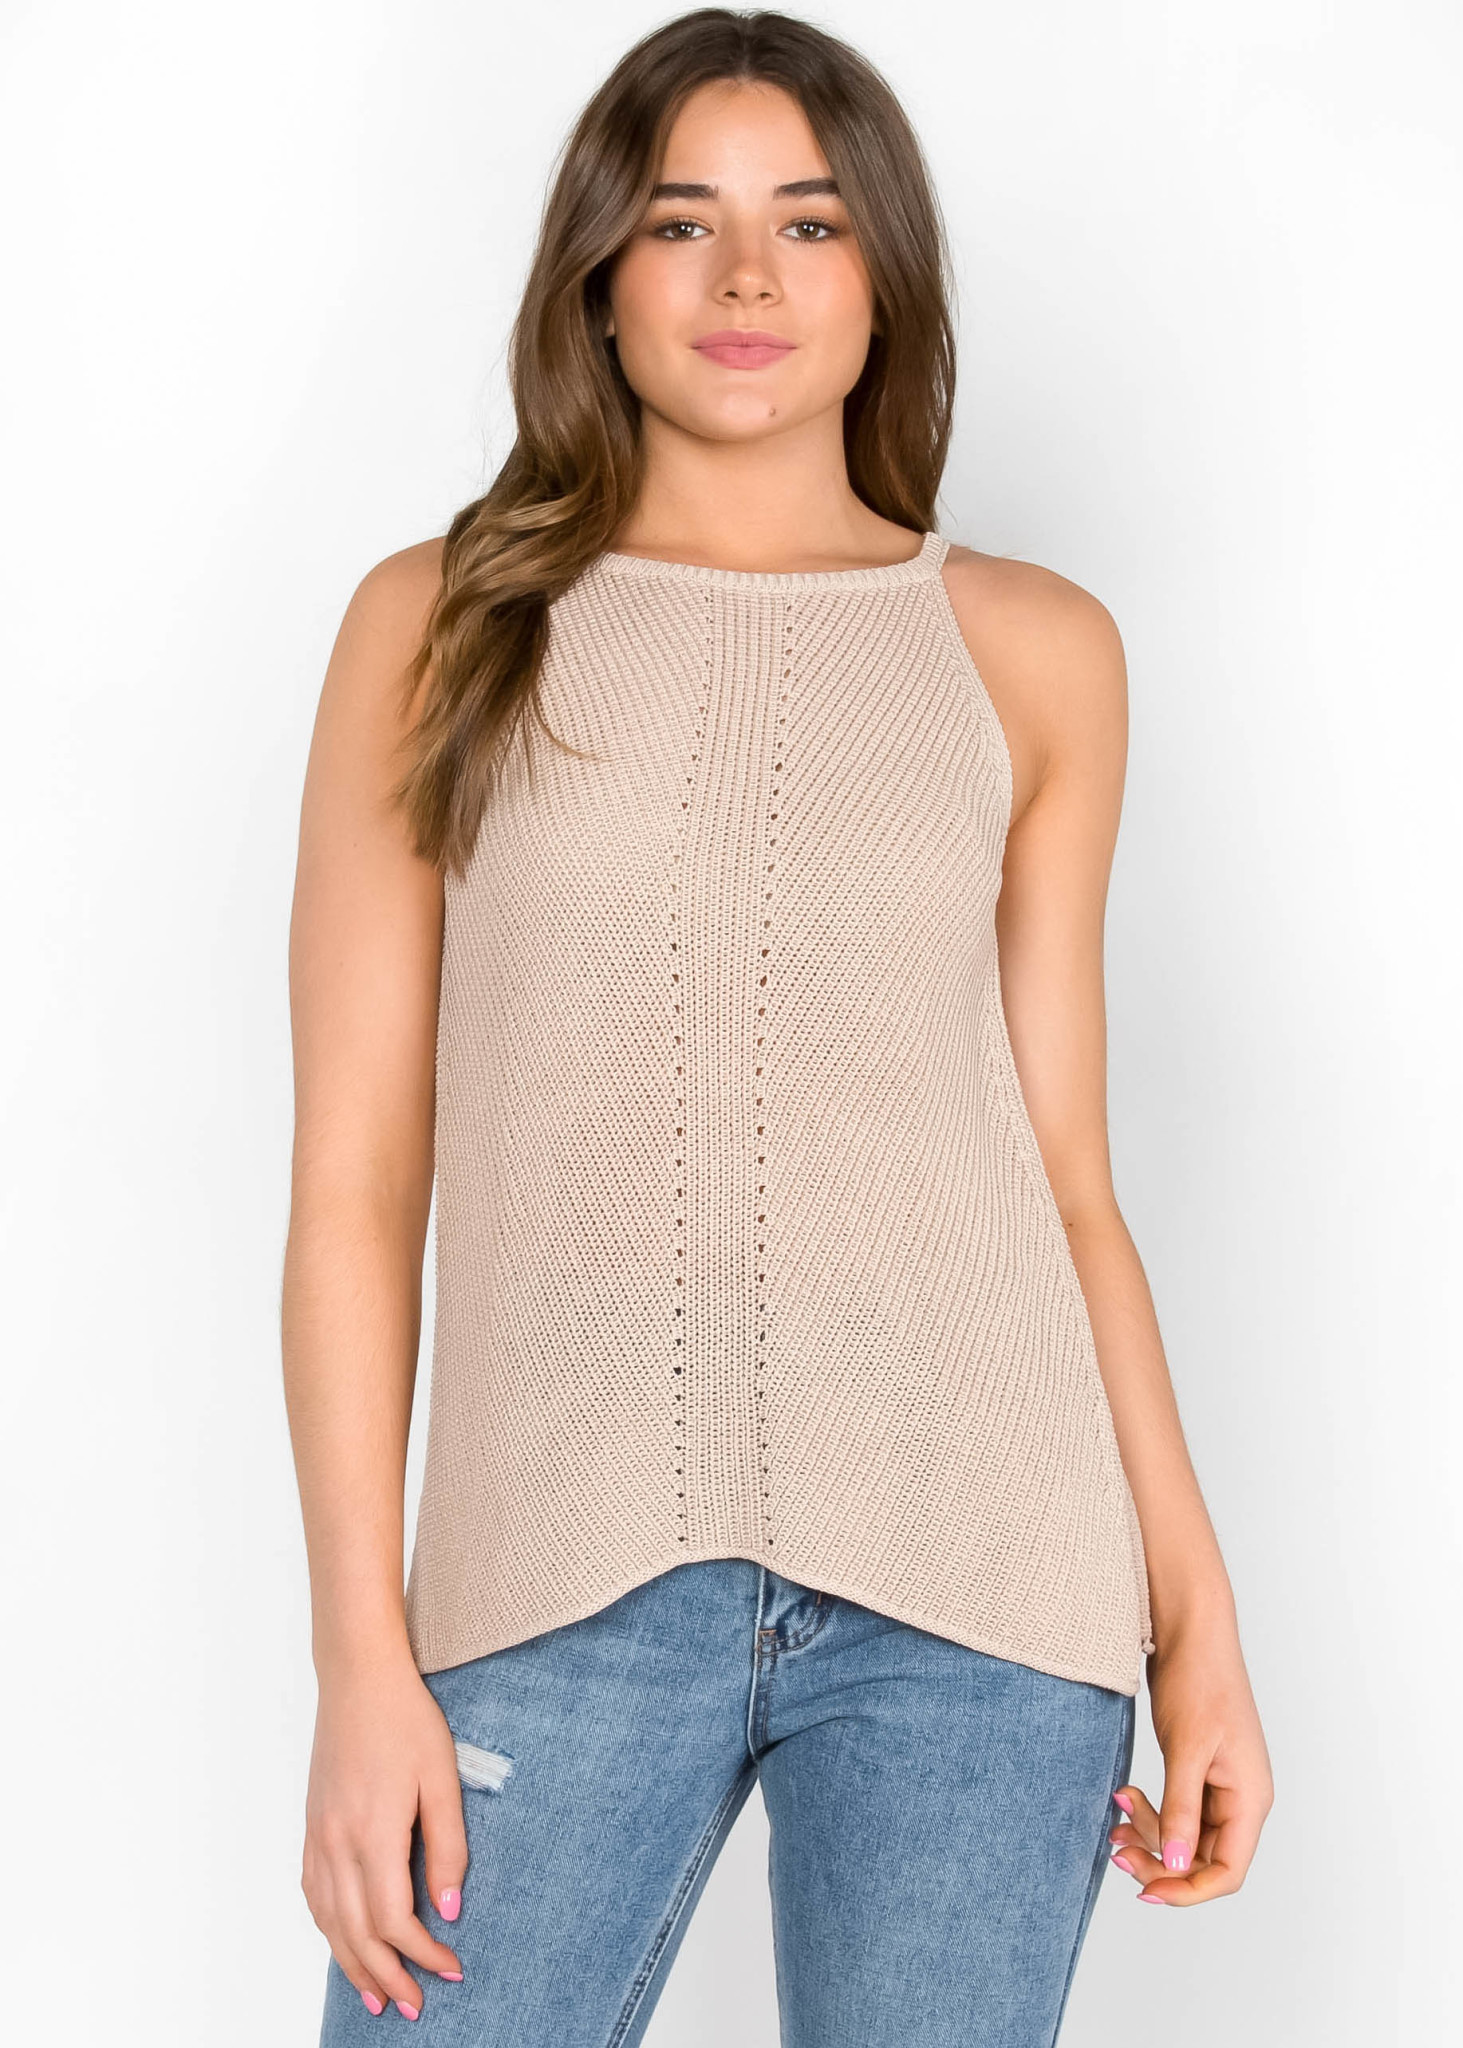 OUT IN THE SUN KNIT TANK TOP